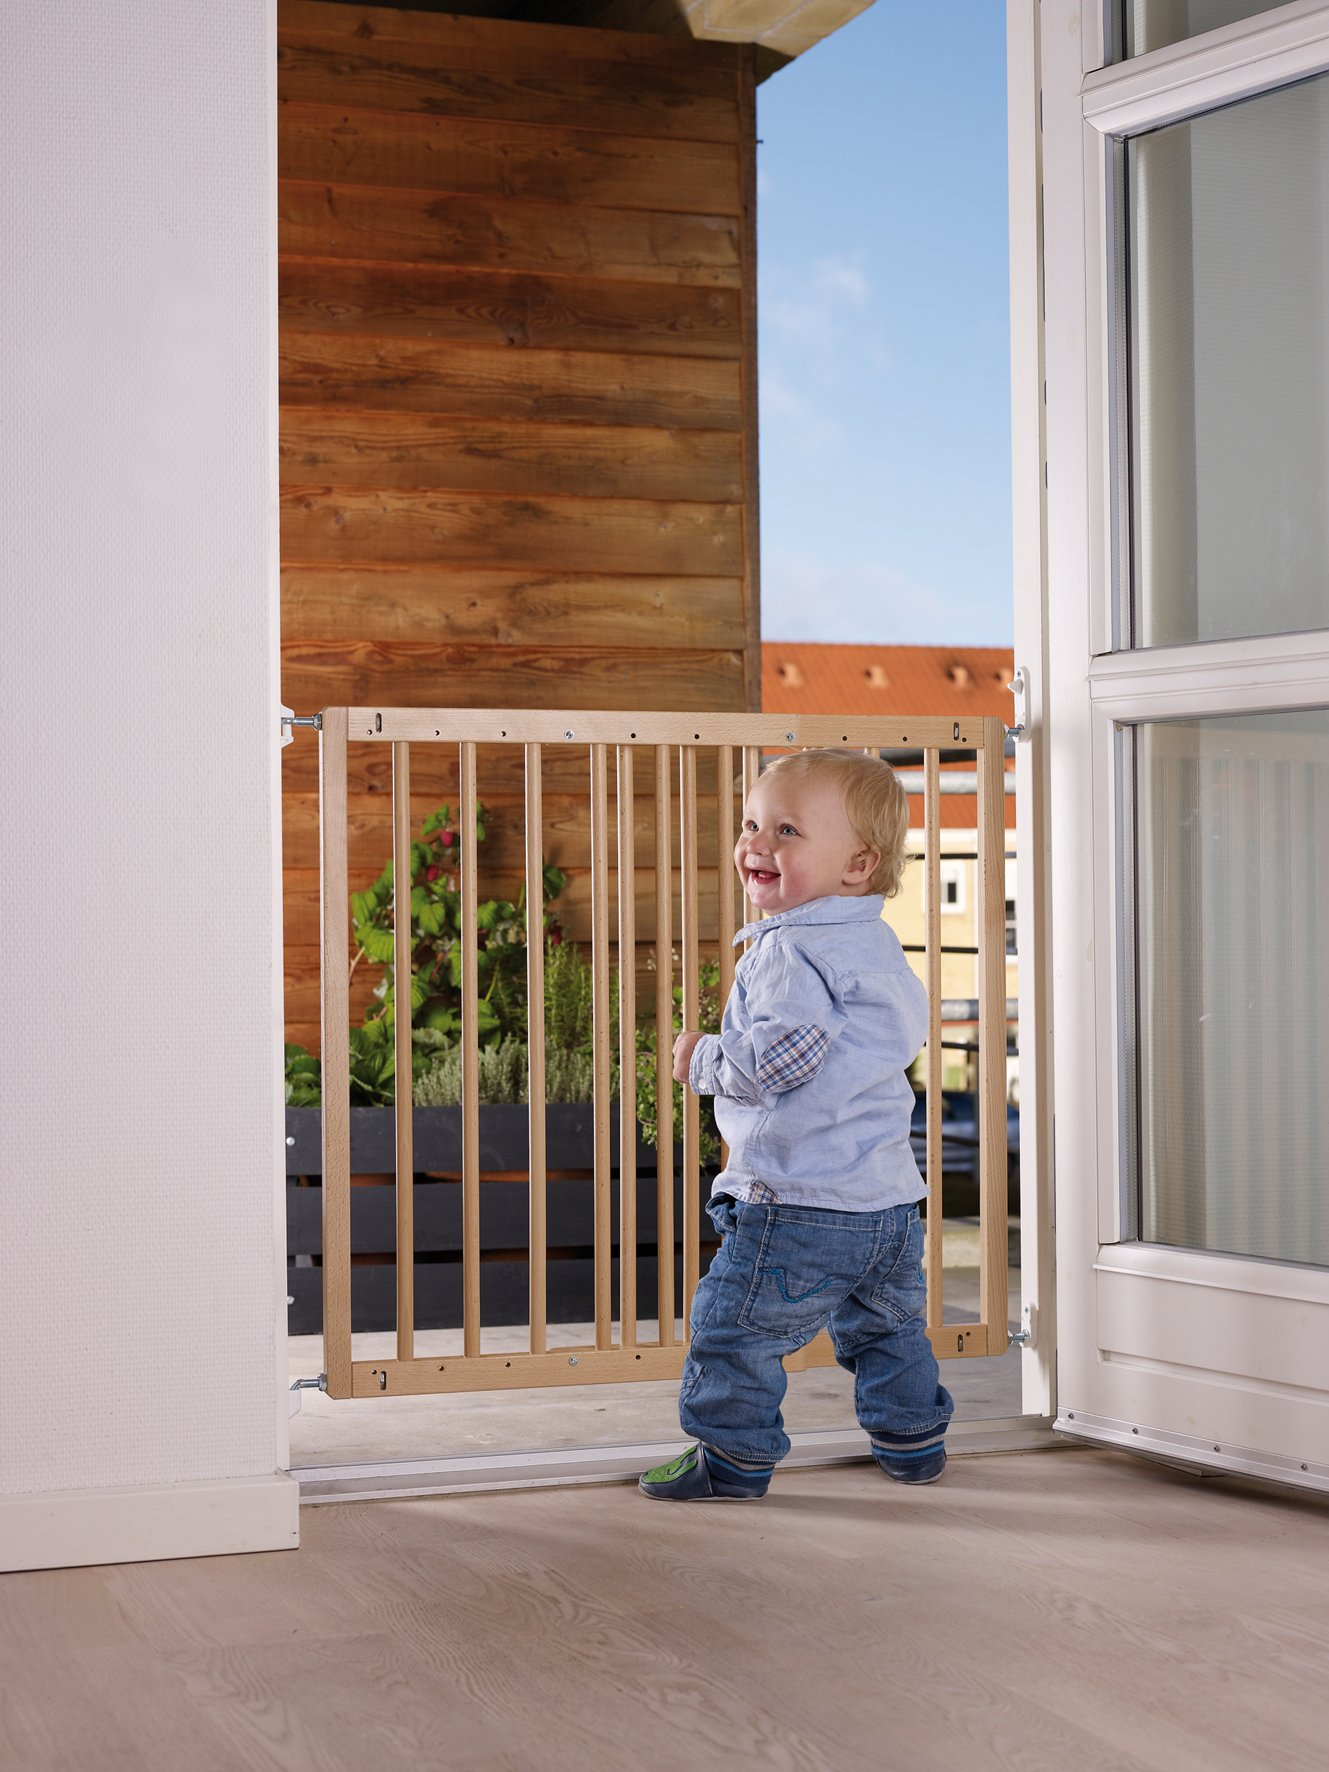 BabyDan Multidan Extending Wooden Safety Gate Beech, 60.5-102cm  Opening measurements: 60.5 - 102 cm (23.9 inches - 40.1 inches). 73 cm in height Features wide walk-through section and a no-trip bar When fitted, no tools are required to remove the gate for clear passage between the rooms. The gate opens either way and can be operated with one hand 4